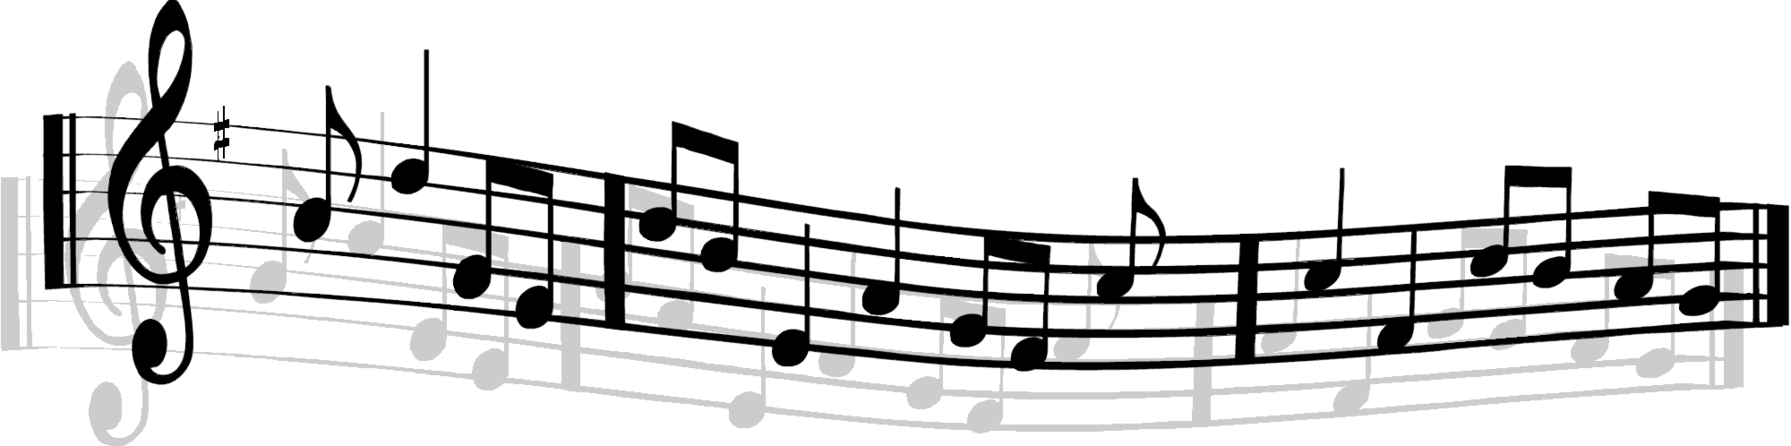 1791x446 Free Clipart Musical Notes